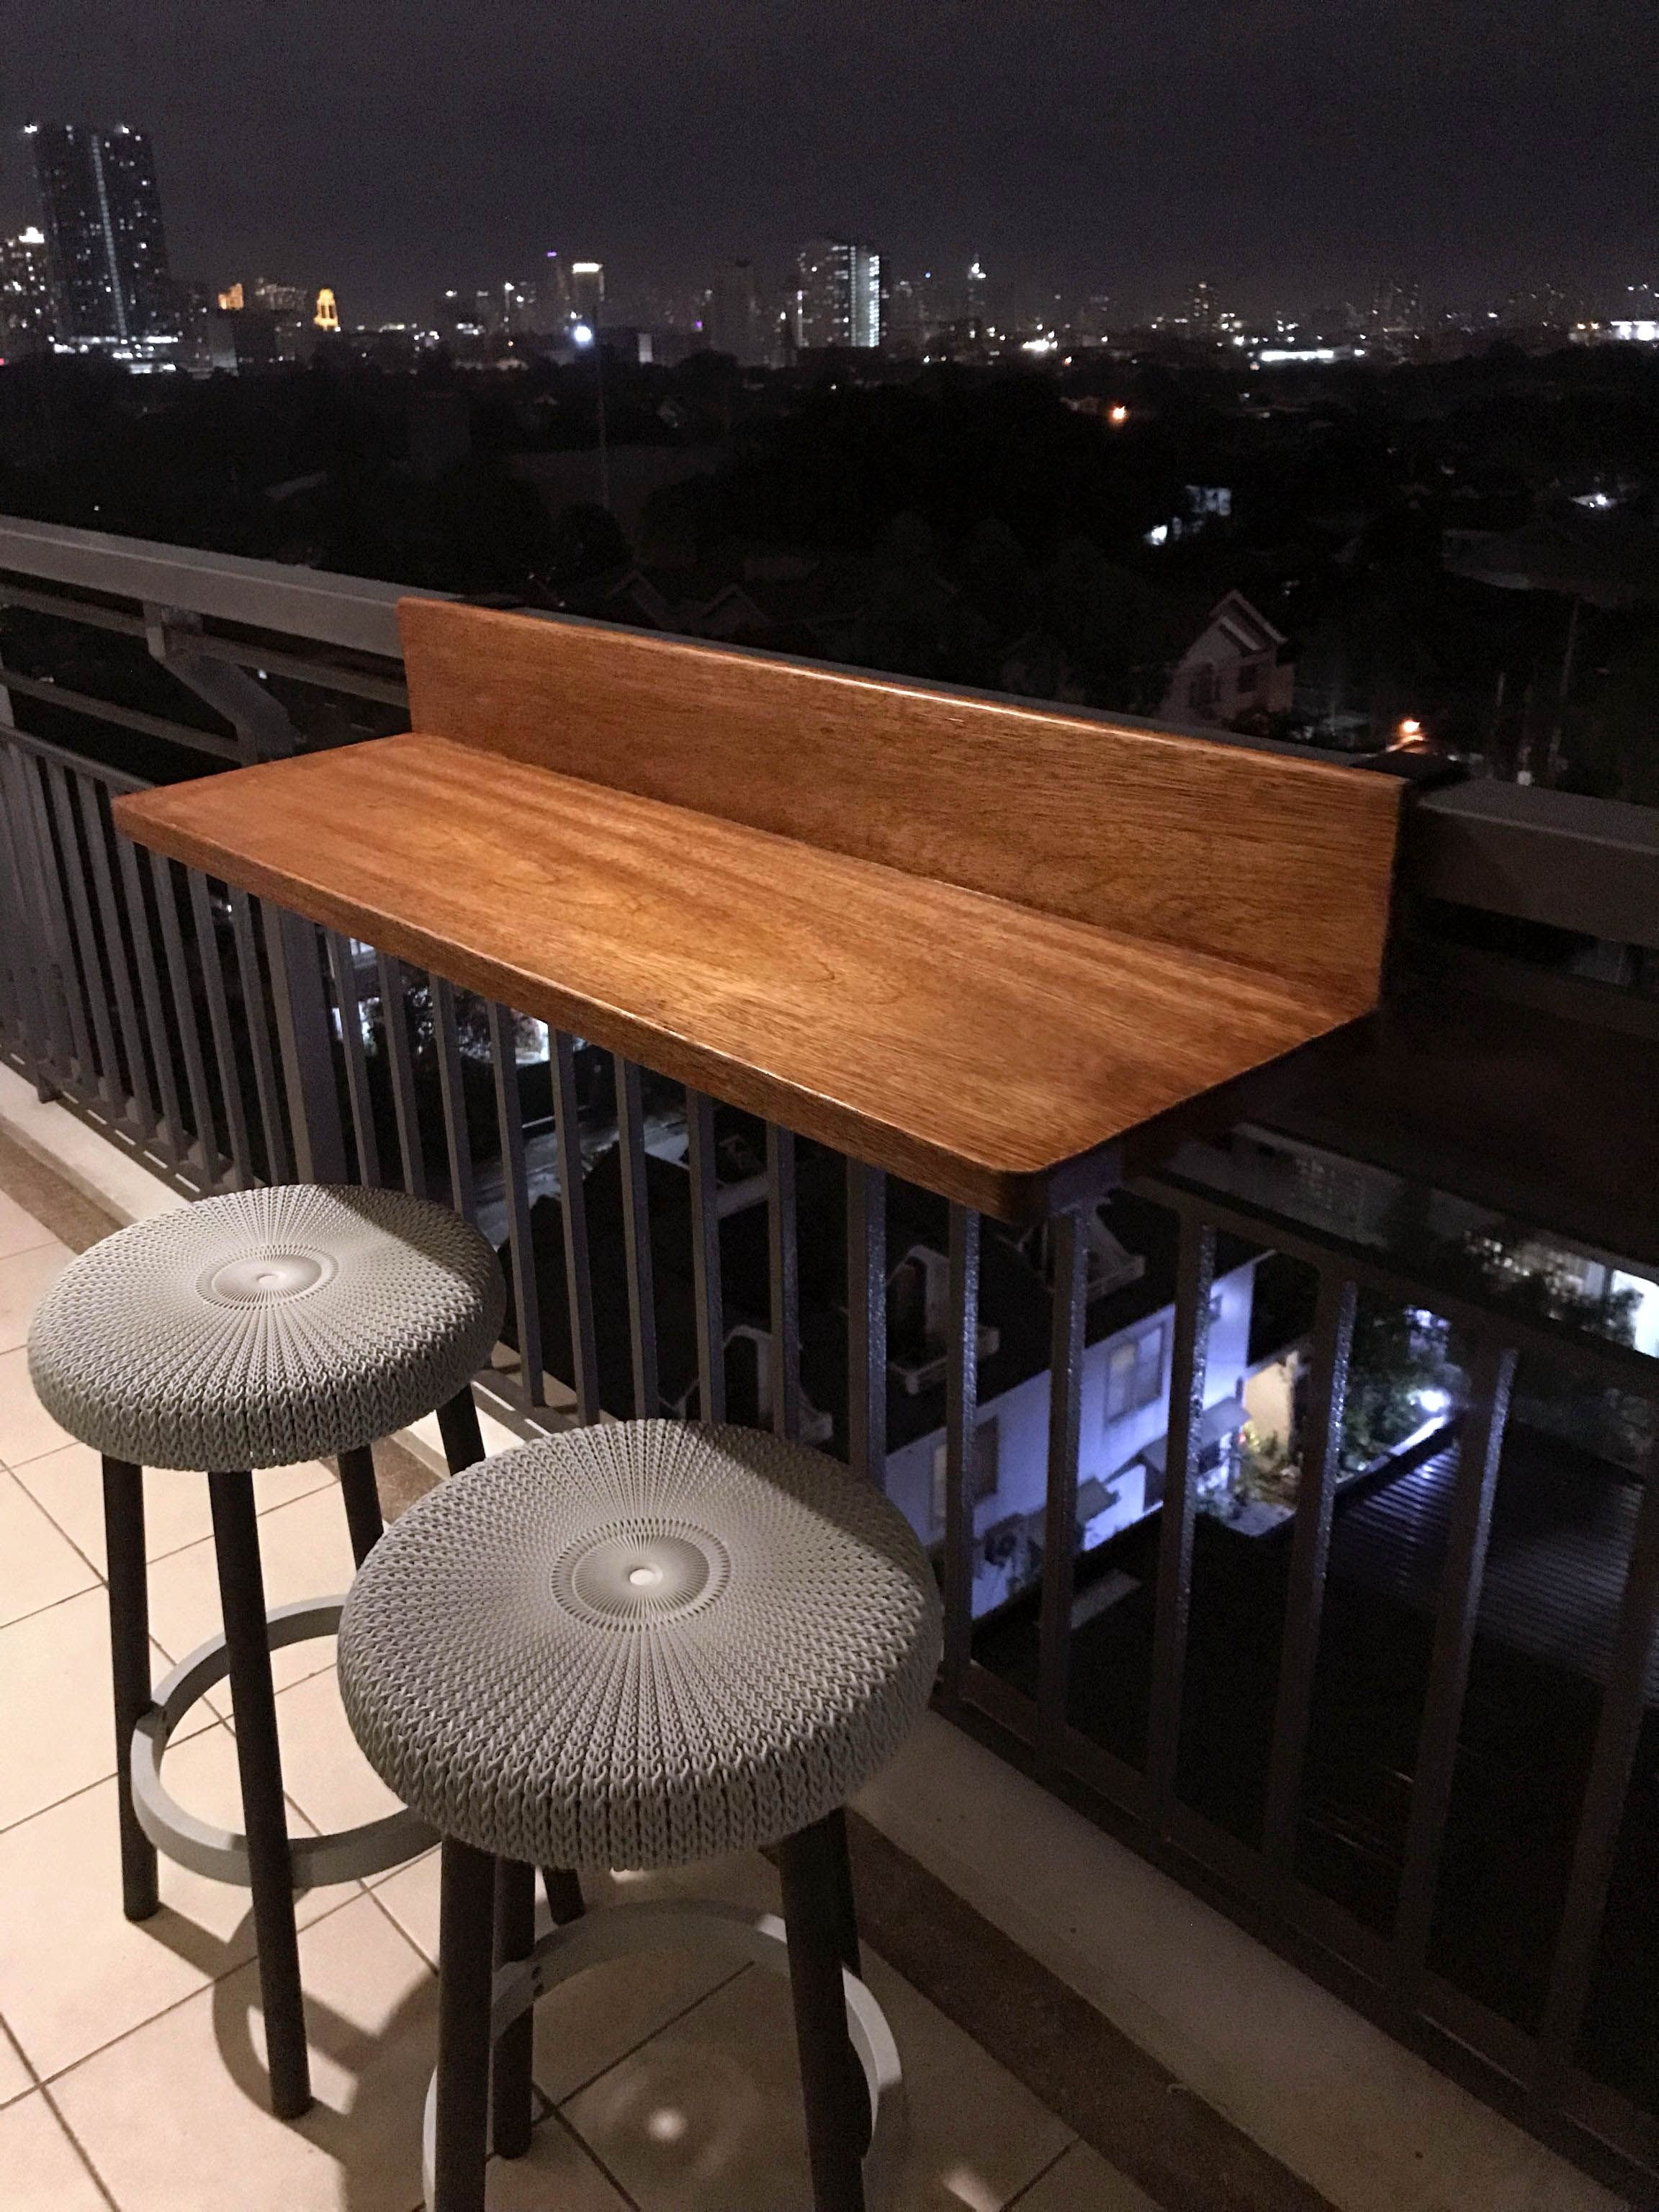 Great balcony bar met you'll love #smallbalconyfurniture